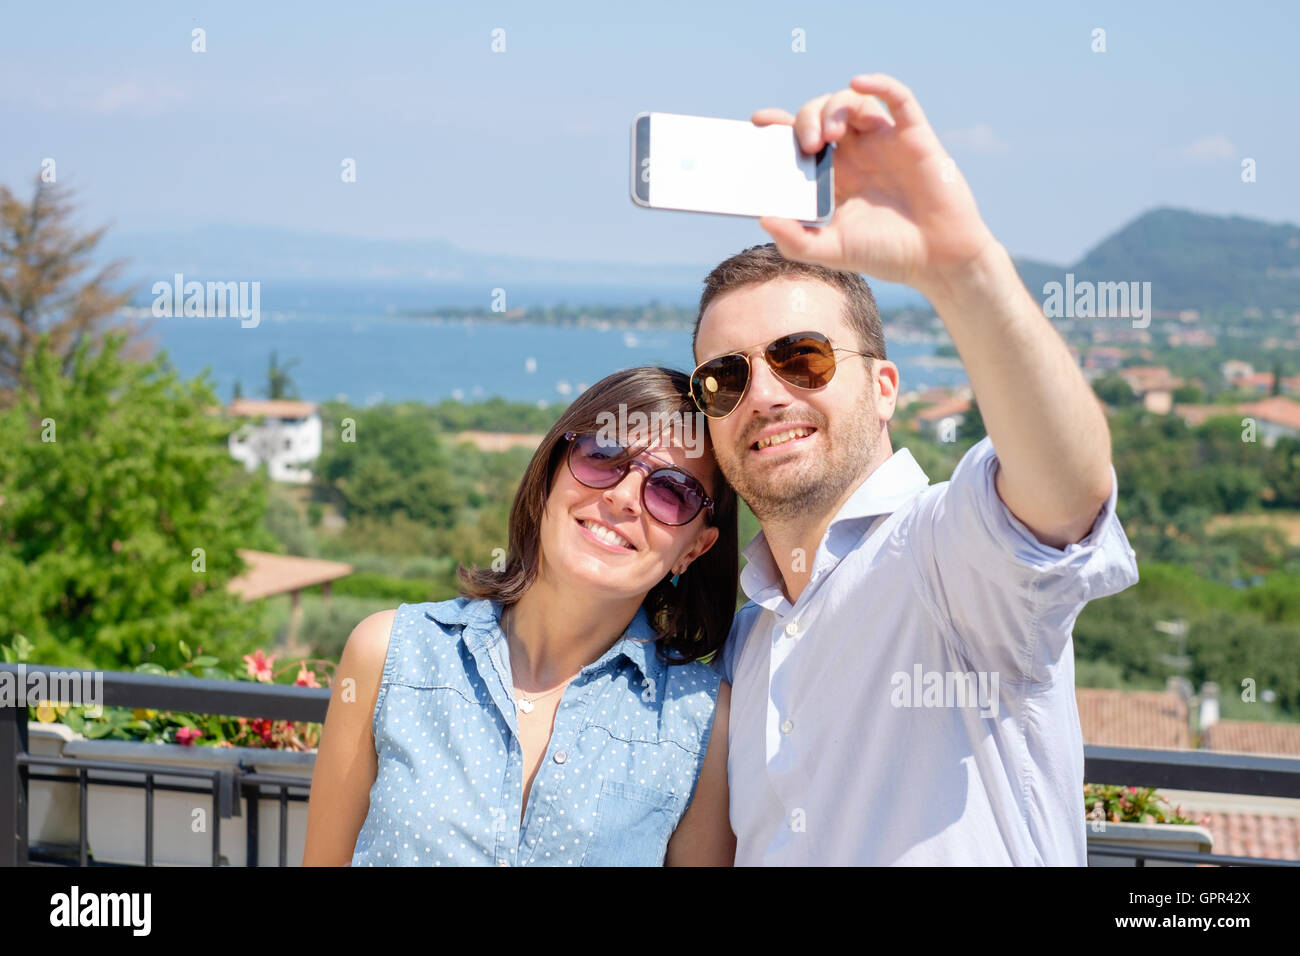 Couple taking  selfie during their vacations - Stock Image